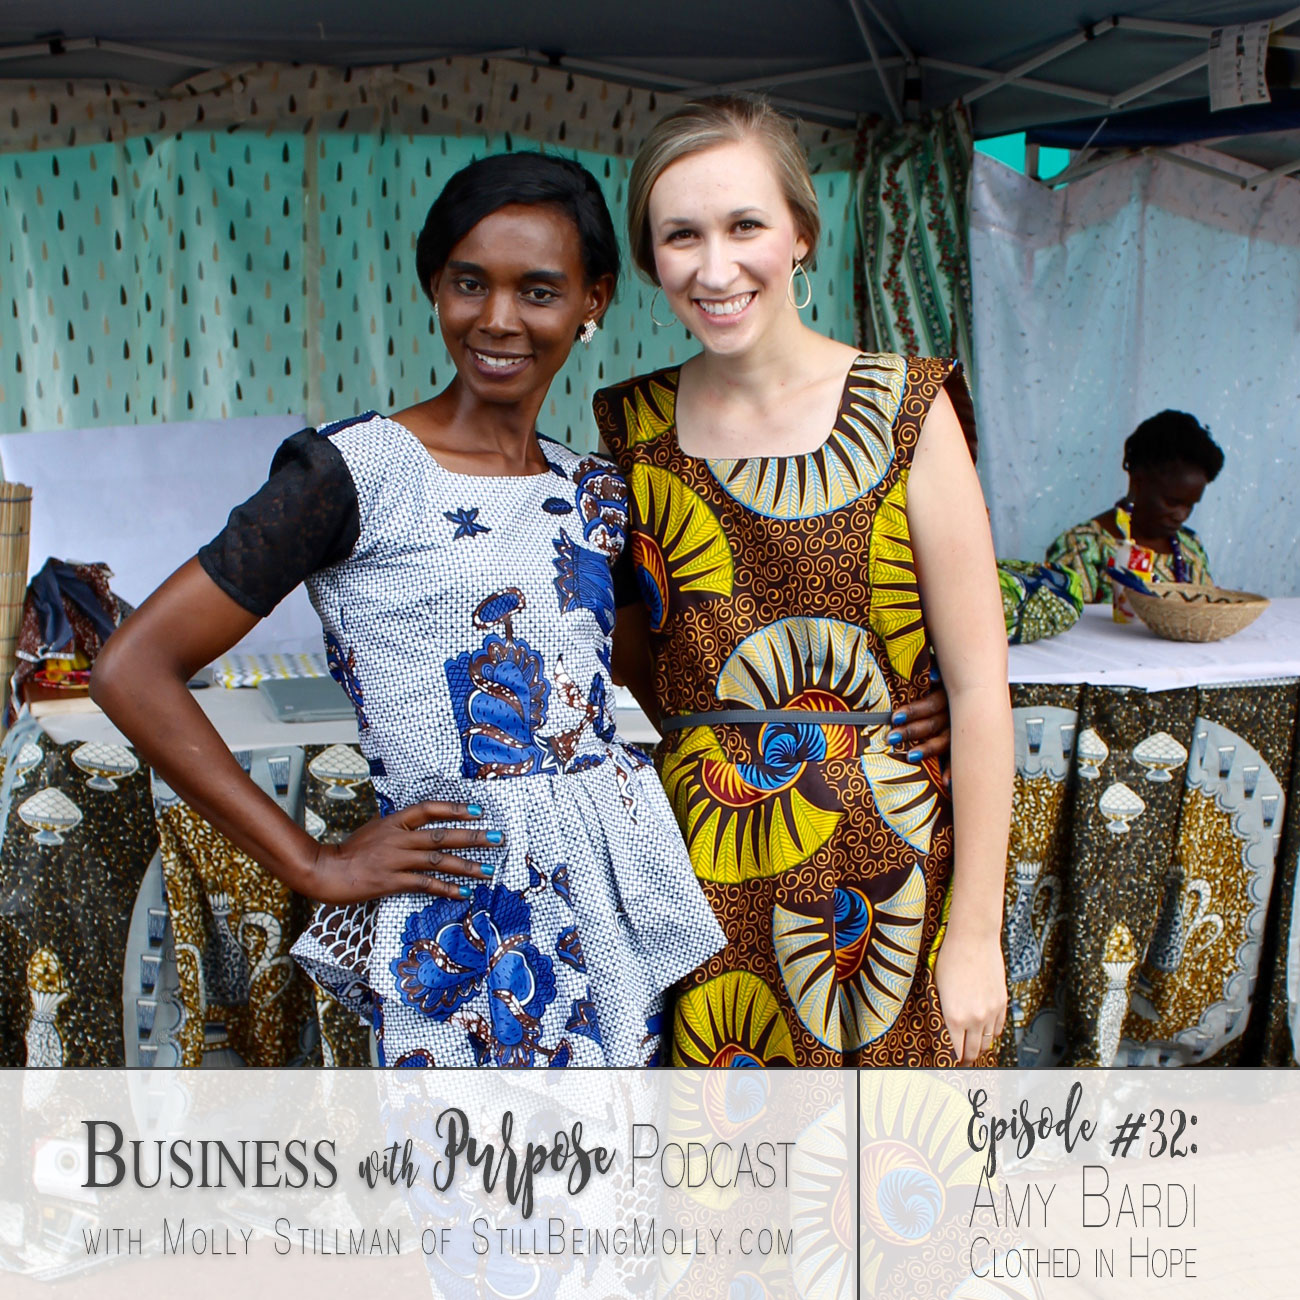 EP. 32: Amy Bardi, Founder of Clothed in HopeEP. 32: Amy Bardi, Founder of Clothed in Hope